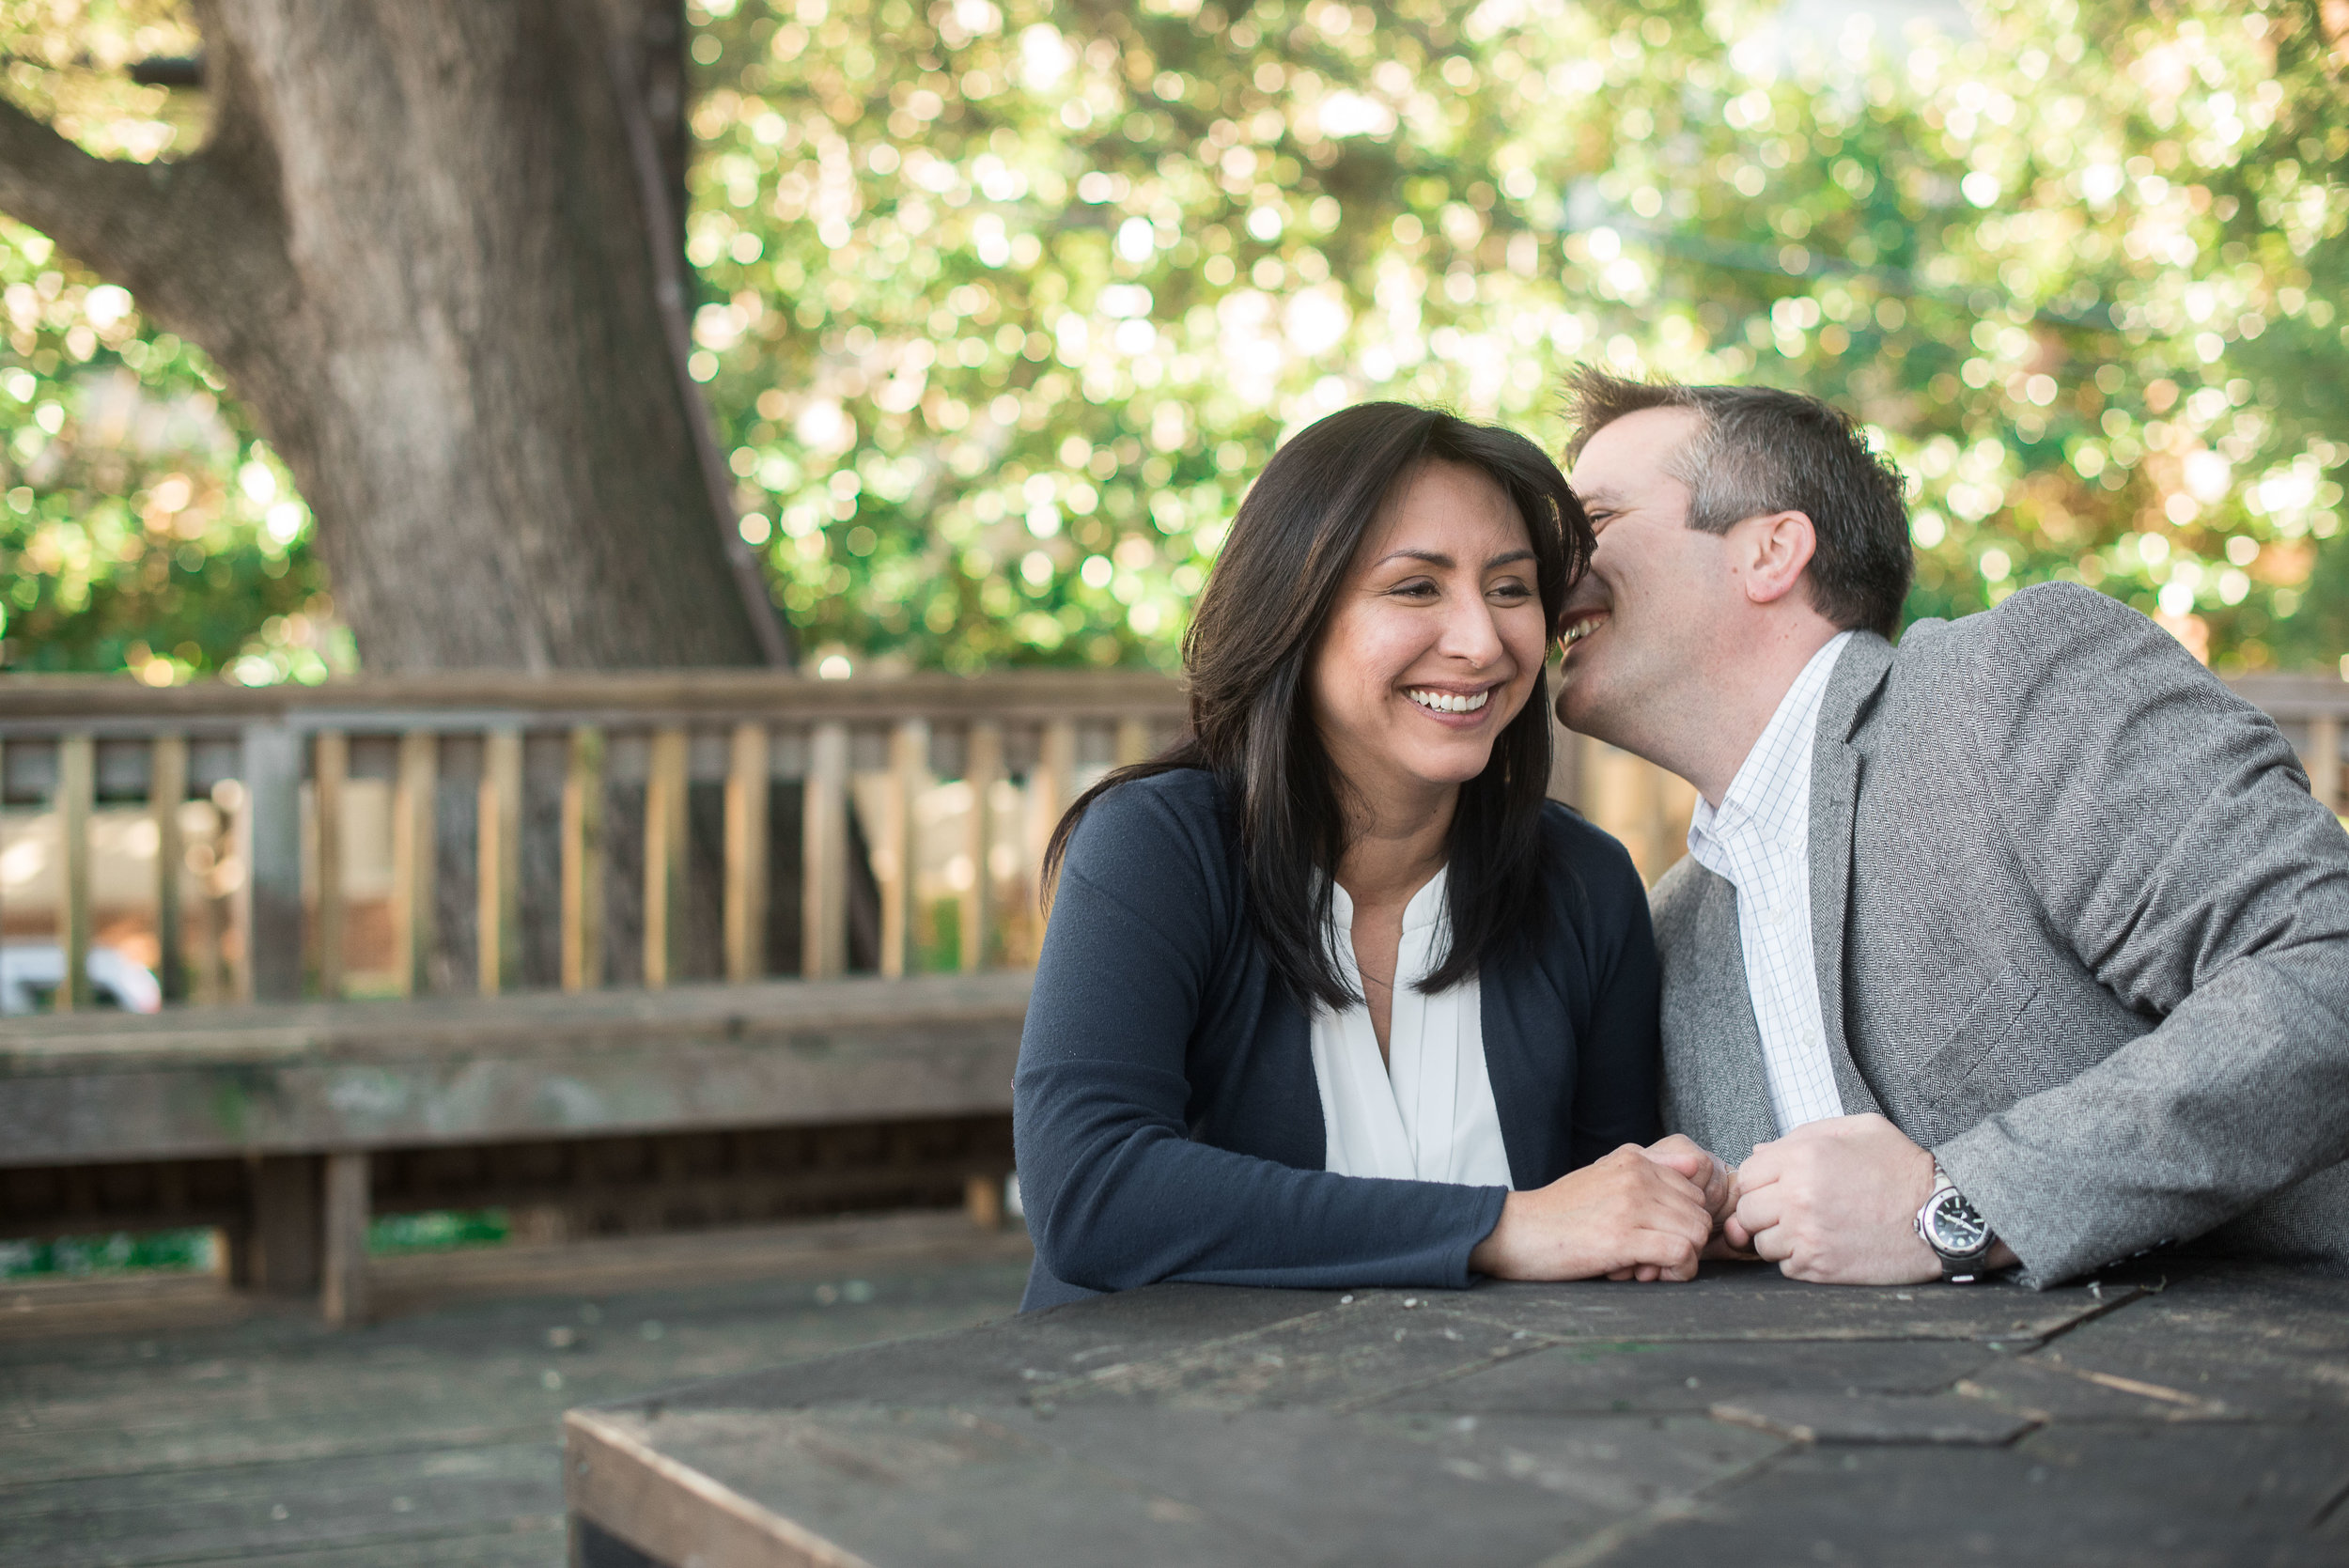 Ana and Byron Engagement Session at Book People Austin Texas-21.JPG